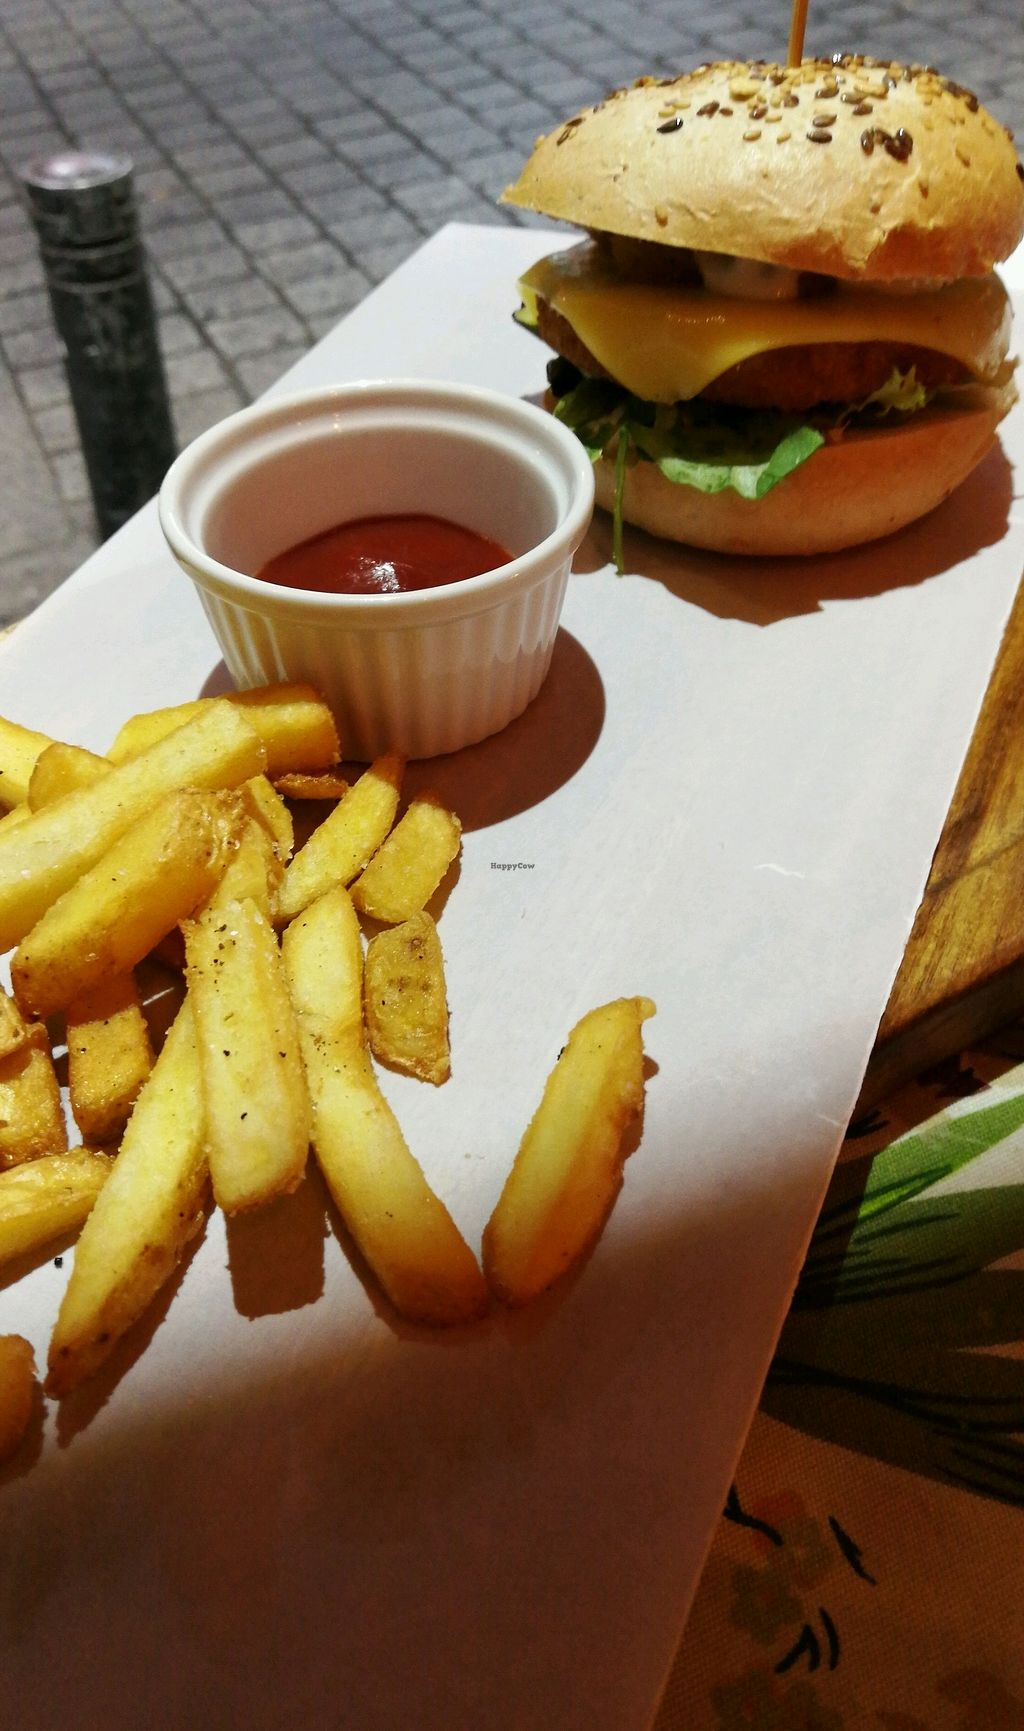 """Photo of CLOSED: Plant Grill  by <a href=""""/members/profile/LenaMarie"""">LenaMarie</a> <br/>no chik'n burger with extra smoked cheese <br/> September 24, 2017  - <a href='/contact/abuse/image/92475/307815'>Report</a>"""